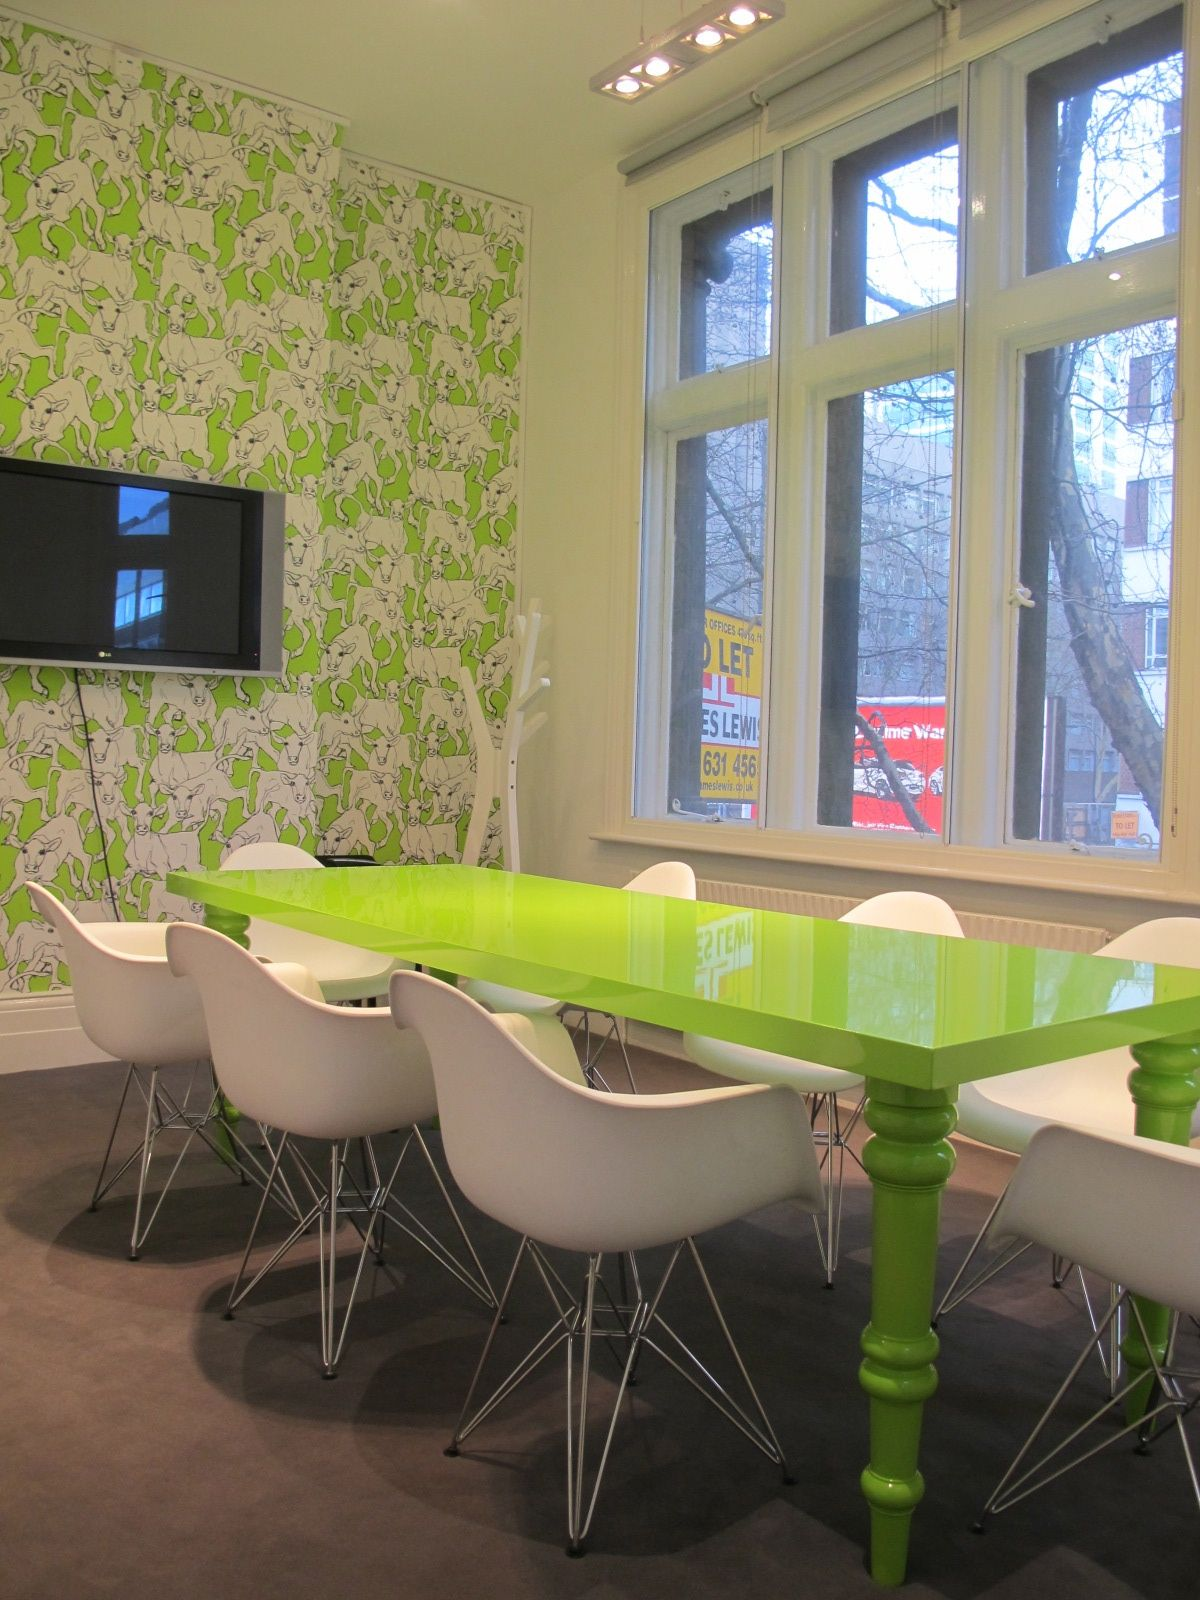 Zesty Bespoke Dining Meeting Table In High Gloss, Lime Cow Wallpaper